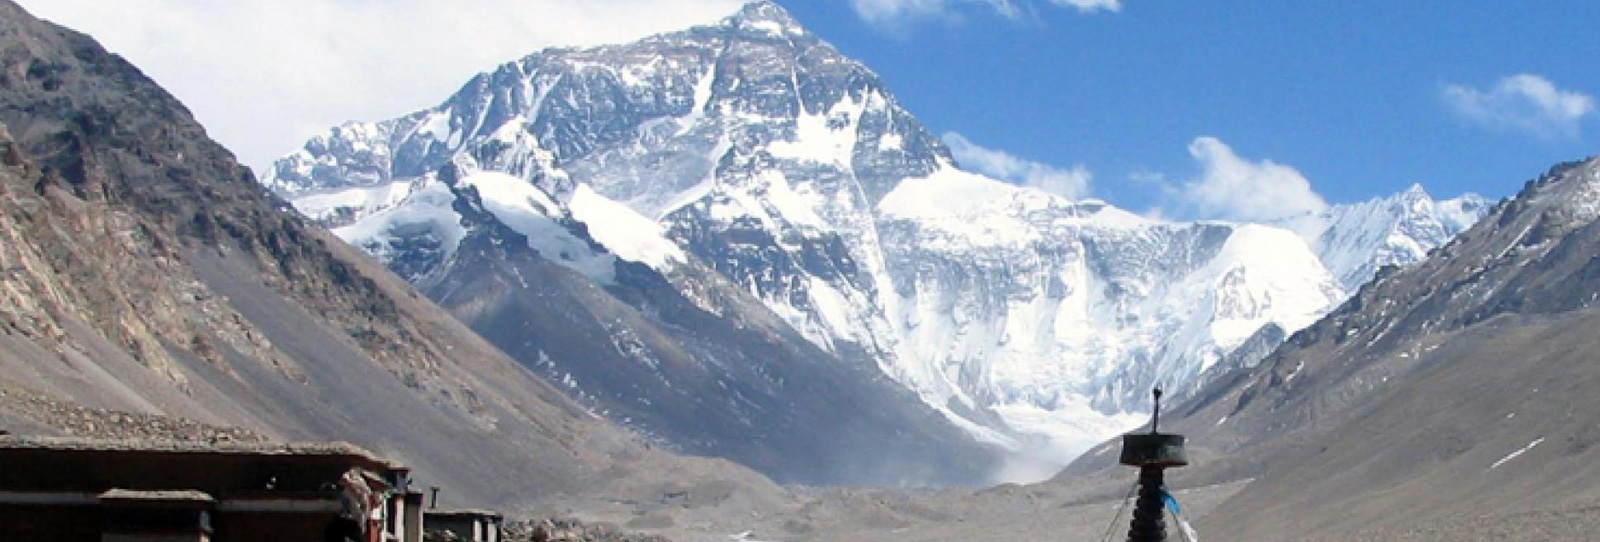 Lhasa Everest Base Camp (EBC) Tibet Tour